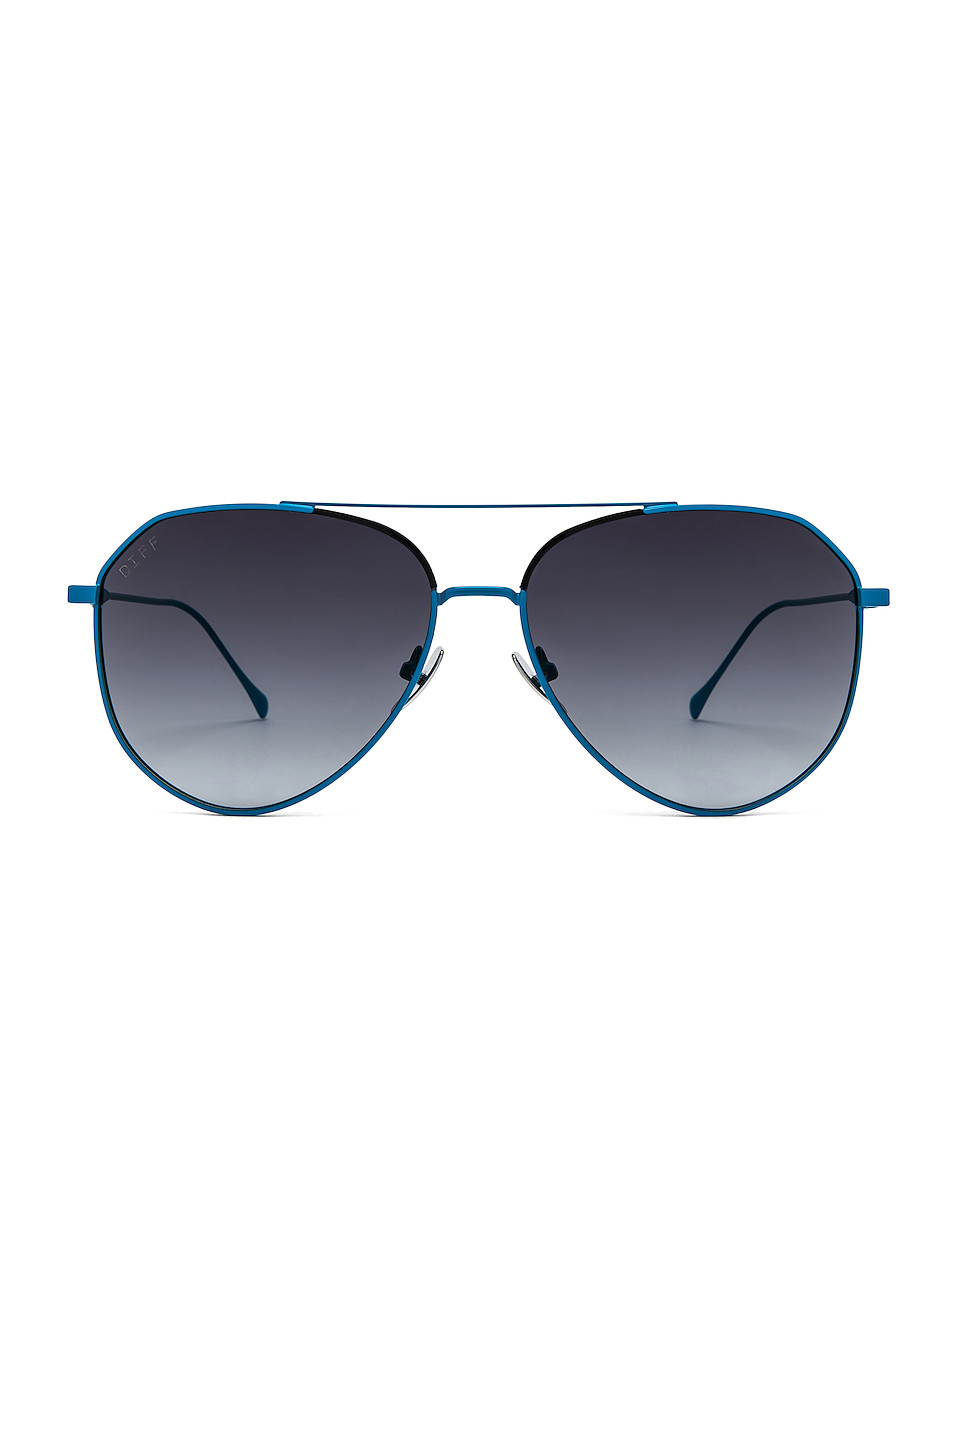 38f7015ed73 Buy Original DIFF EYEWEAR Dash at Indonesia